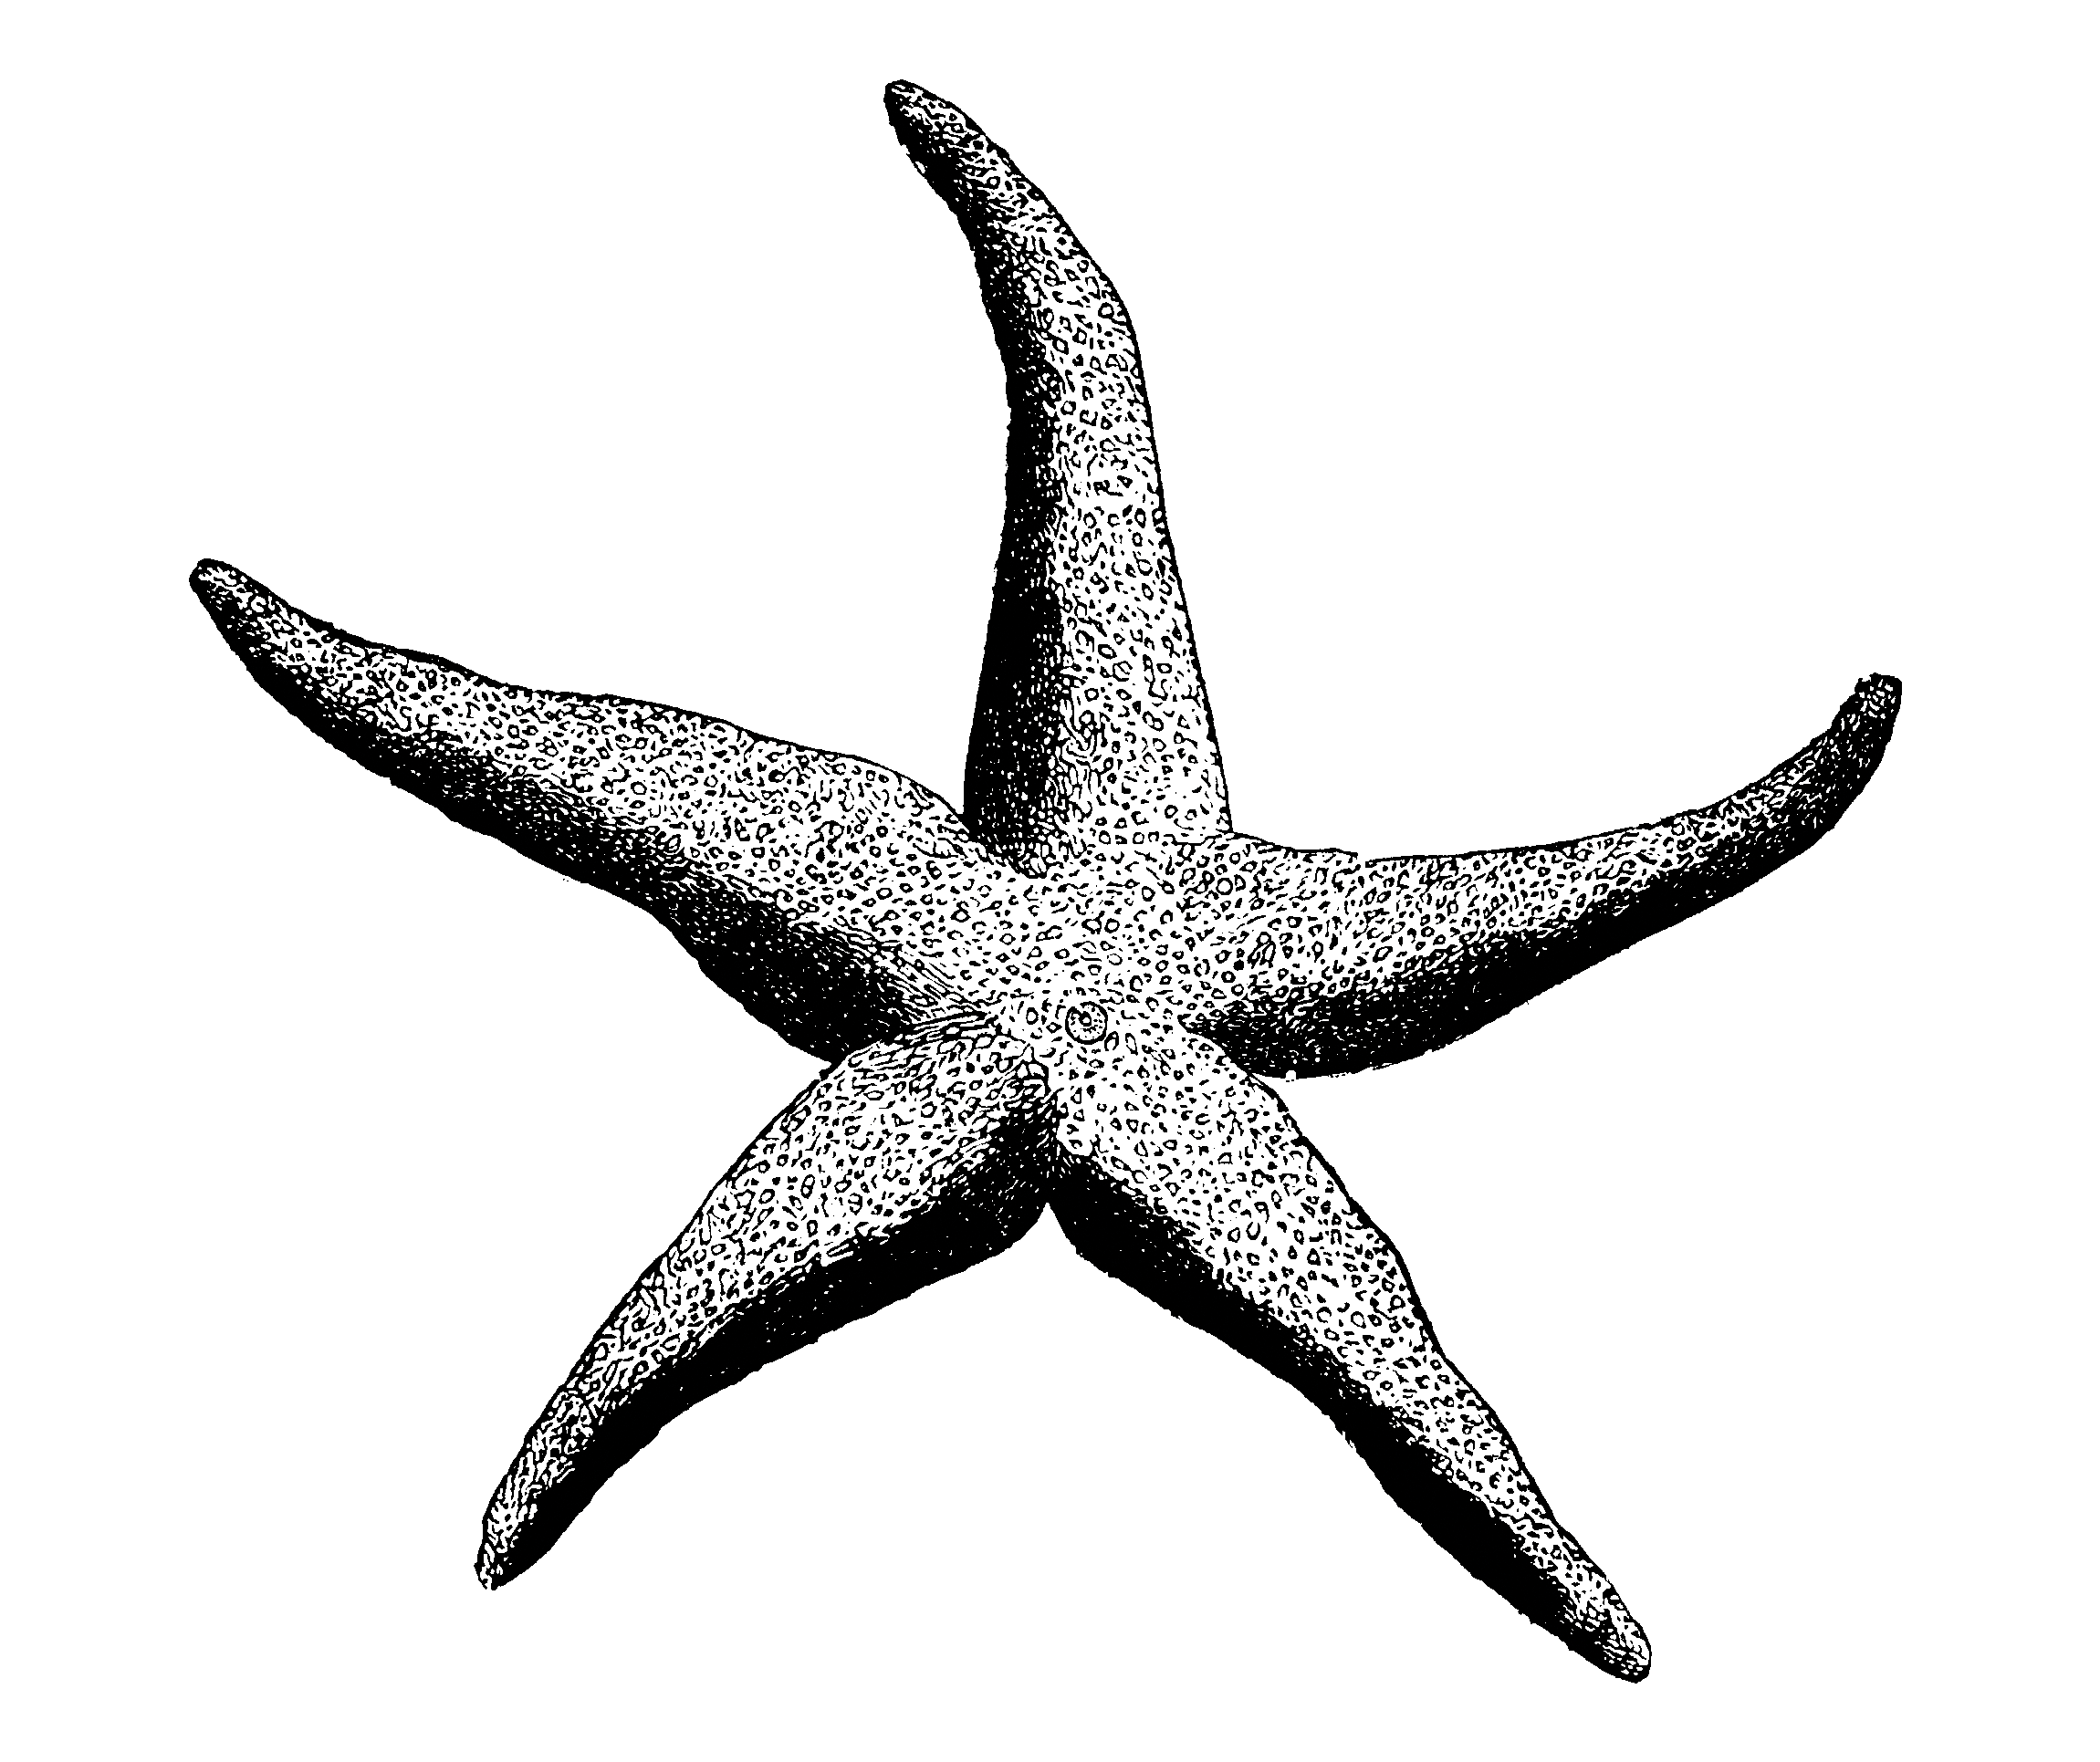 Sea Star Diversity Drawing - PNG Starfish Black And White